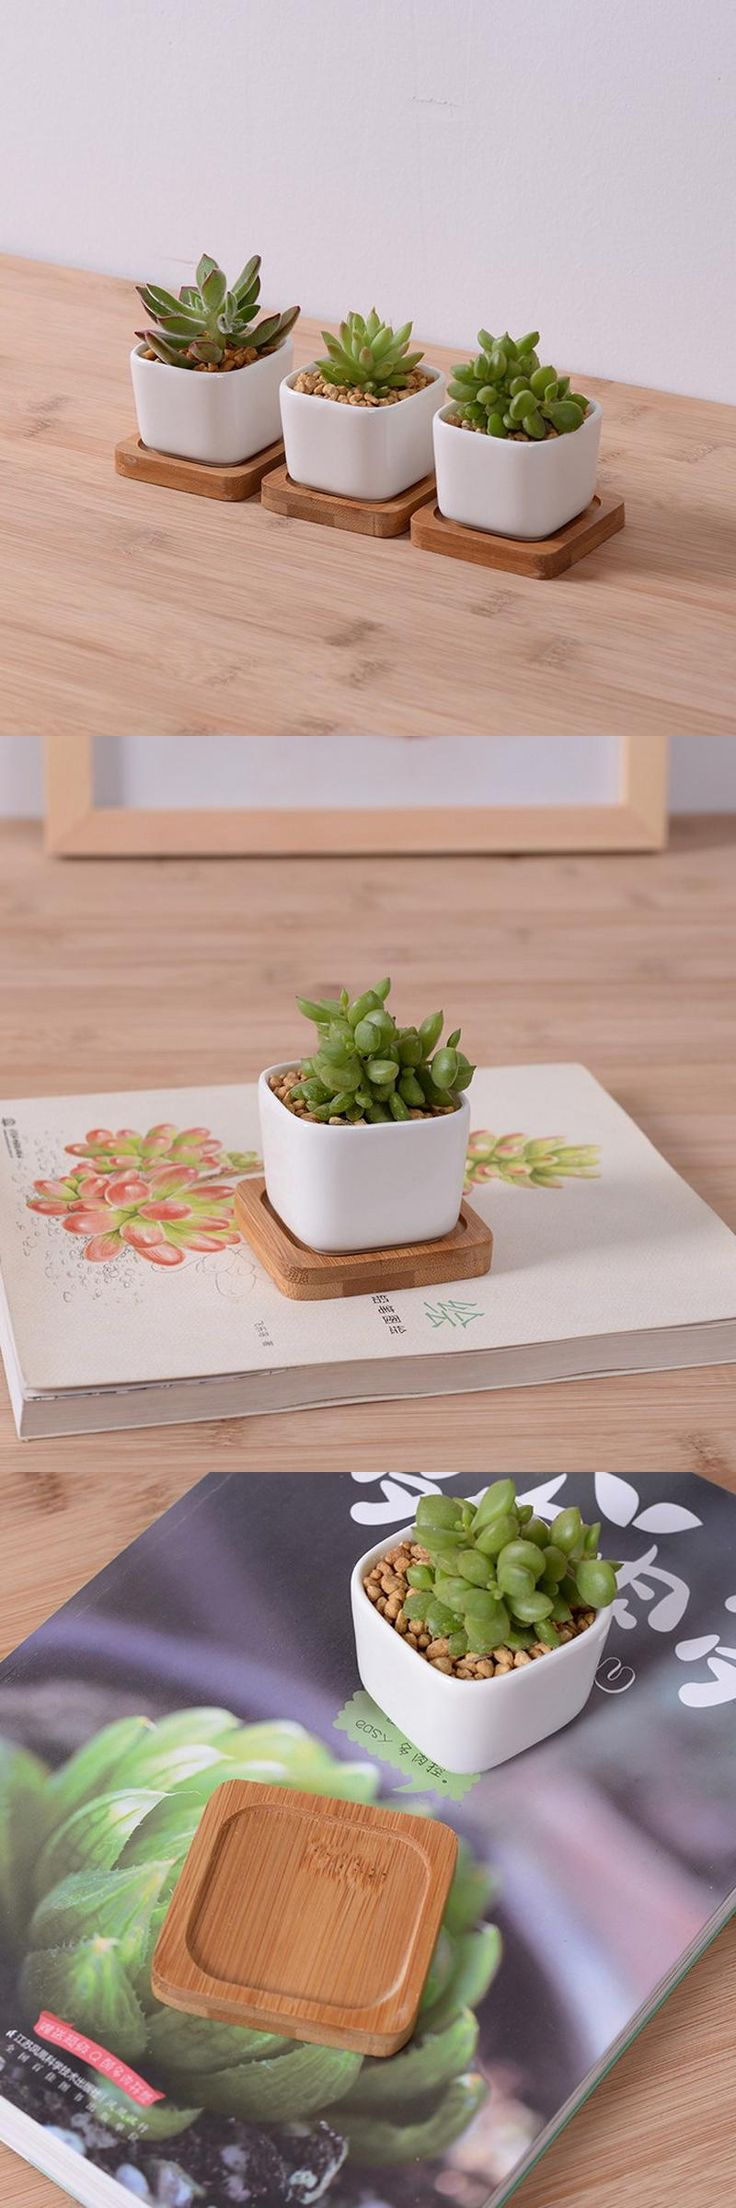 [Visit to Buy]  3pcs/lot hot sale mini ceramic flower planter pot with bamboo tray  white rectangular pottery bonsai plant pot for succulents   #Advertisement